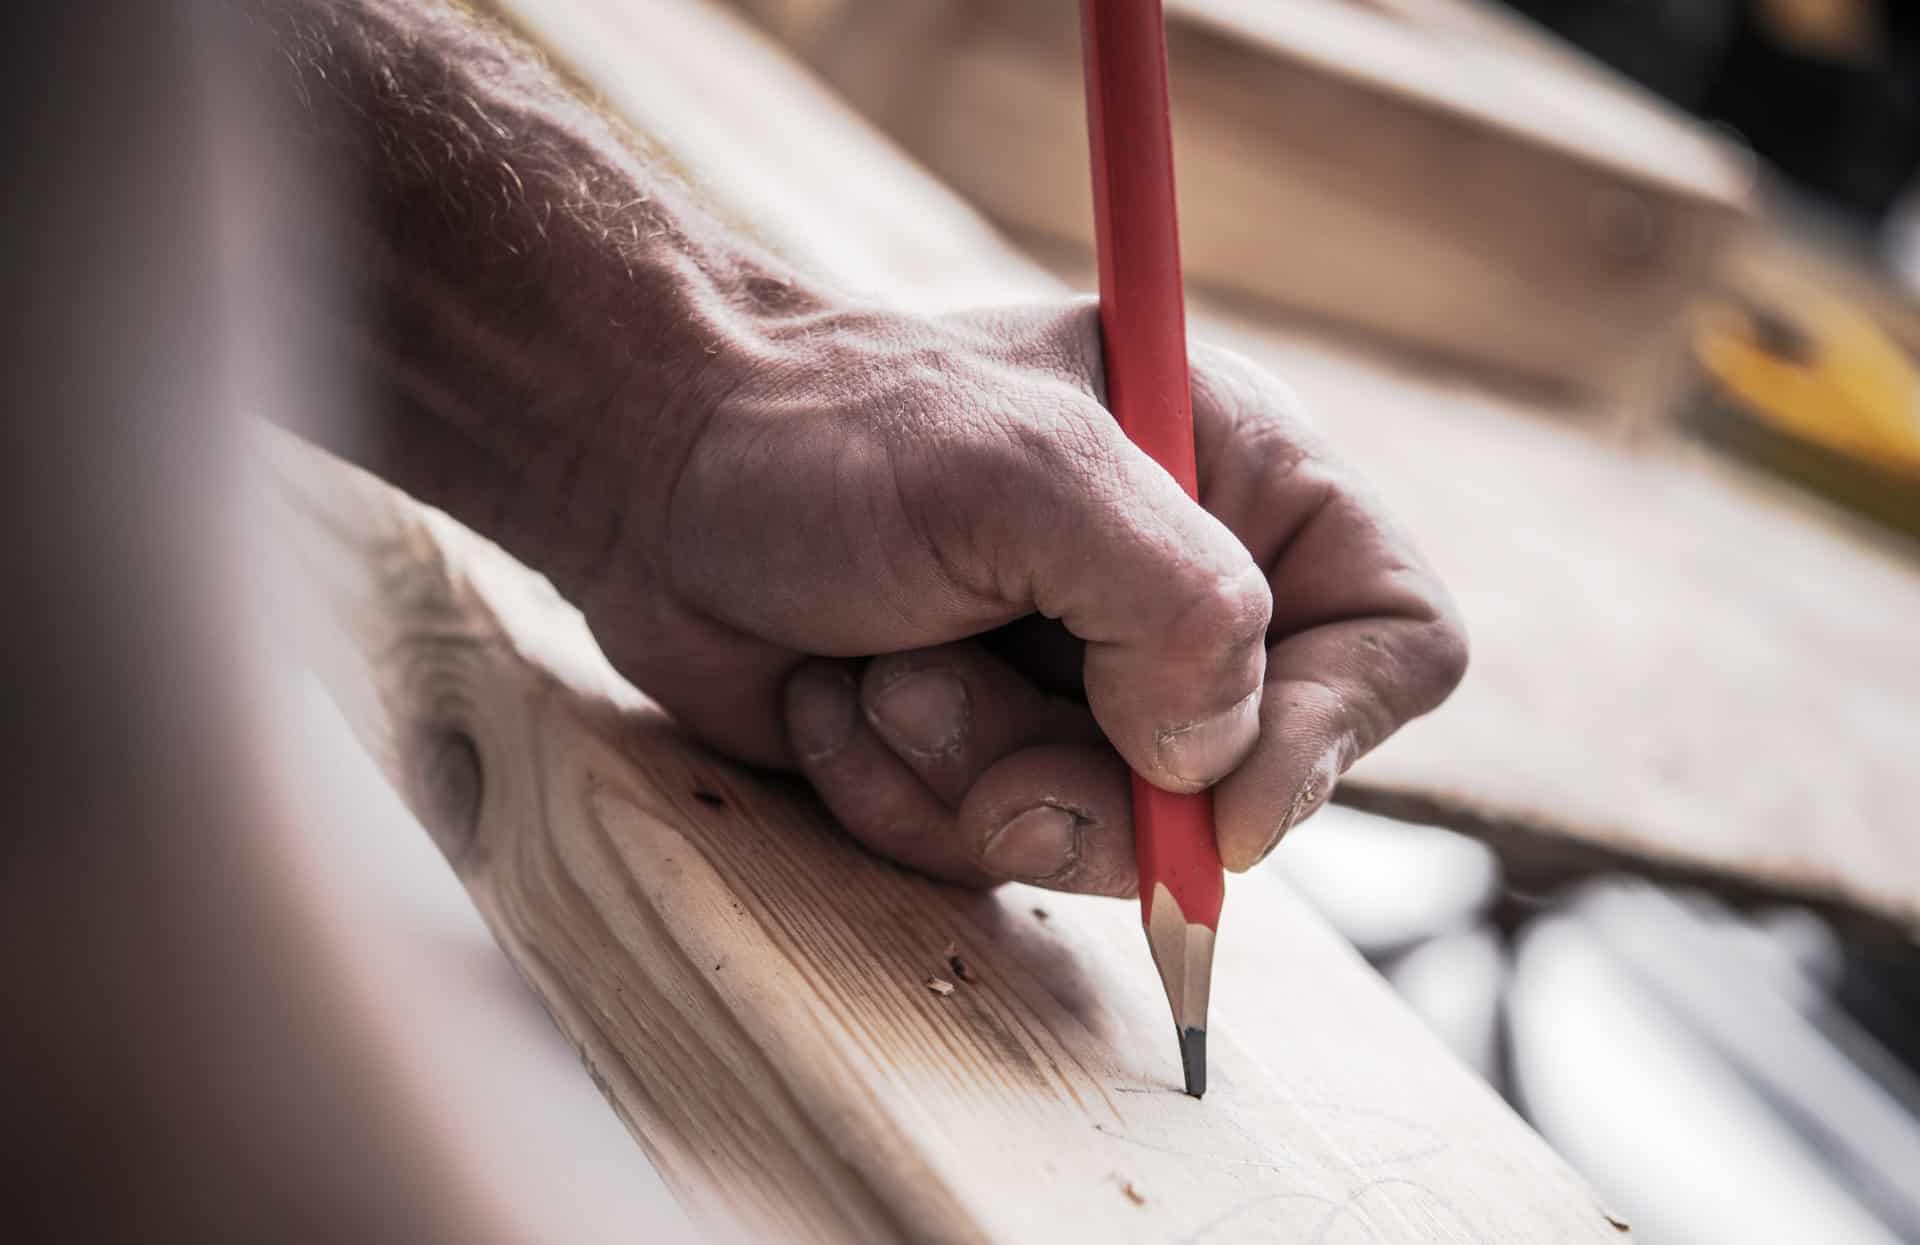 Contact KSW Construction today about becoming a carpenter.